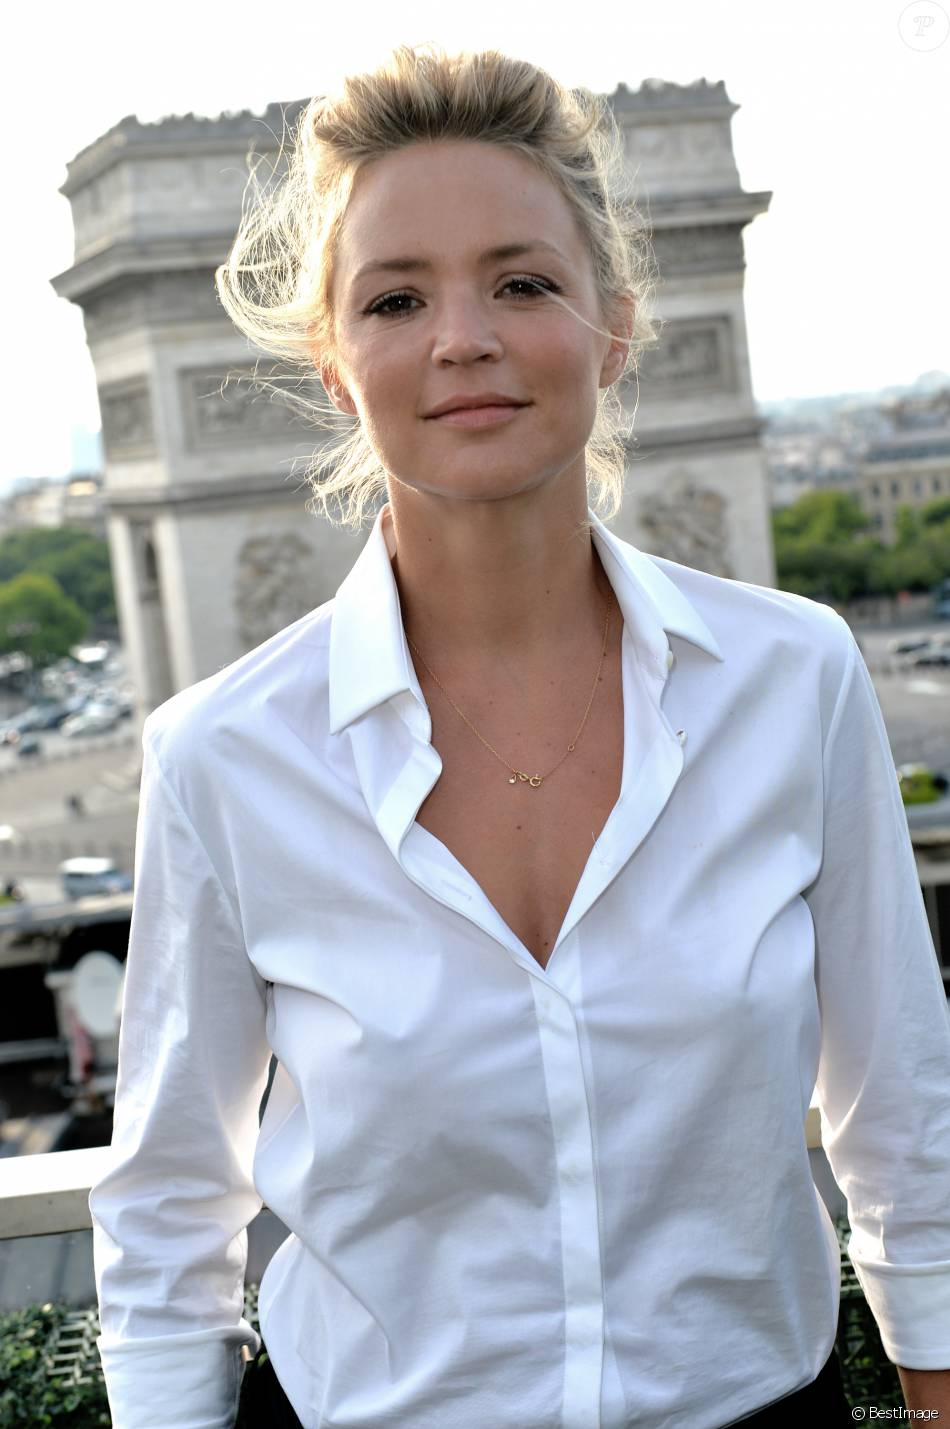 exclusif rencontre avec virginie efira sur la terrasse publicis lors du 4e champs elys es film. Black Bedroom Furniture Sets. Home Design Ideas